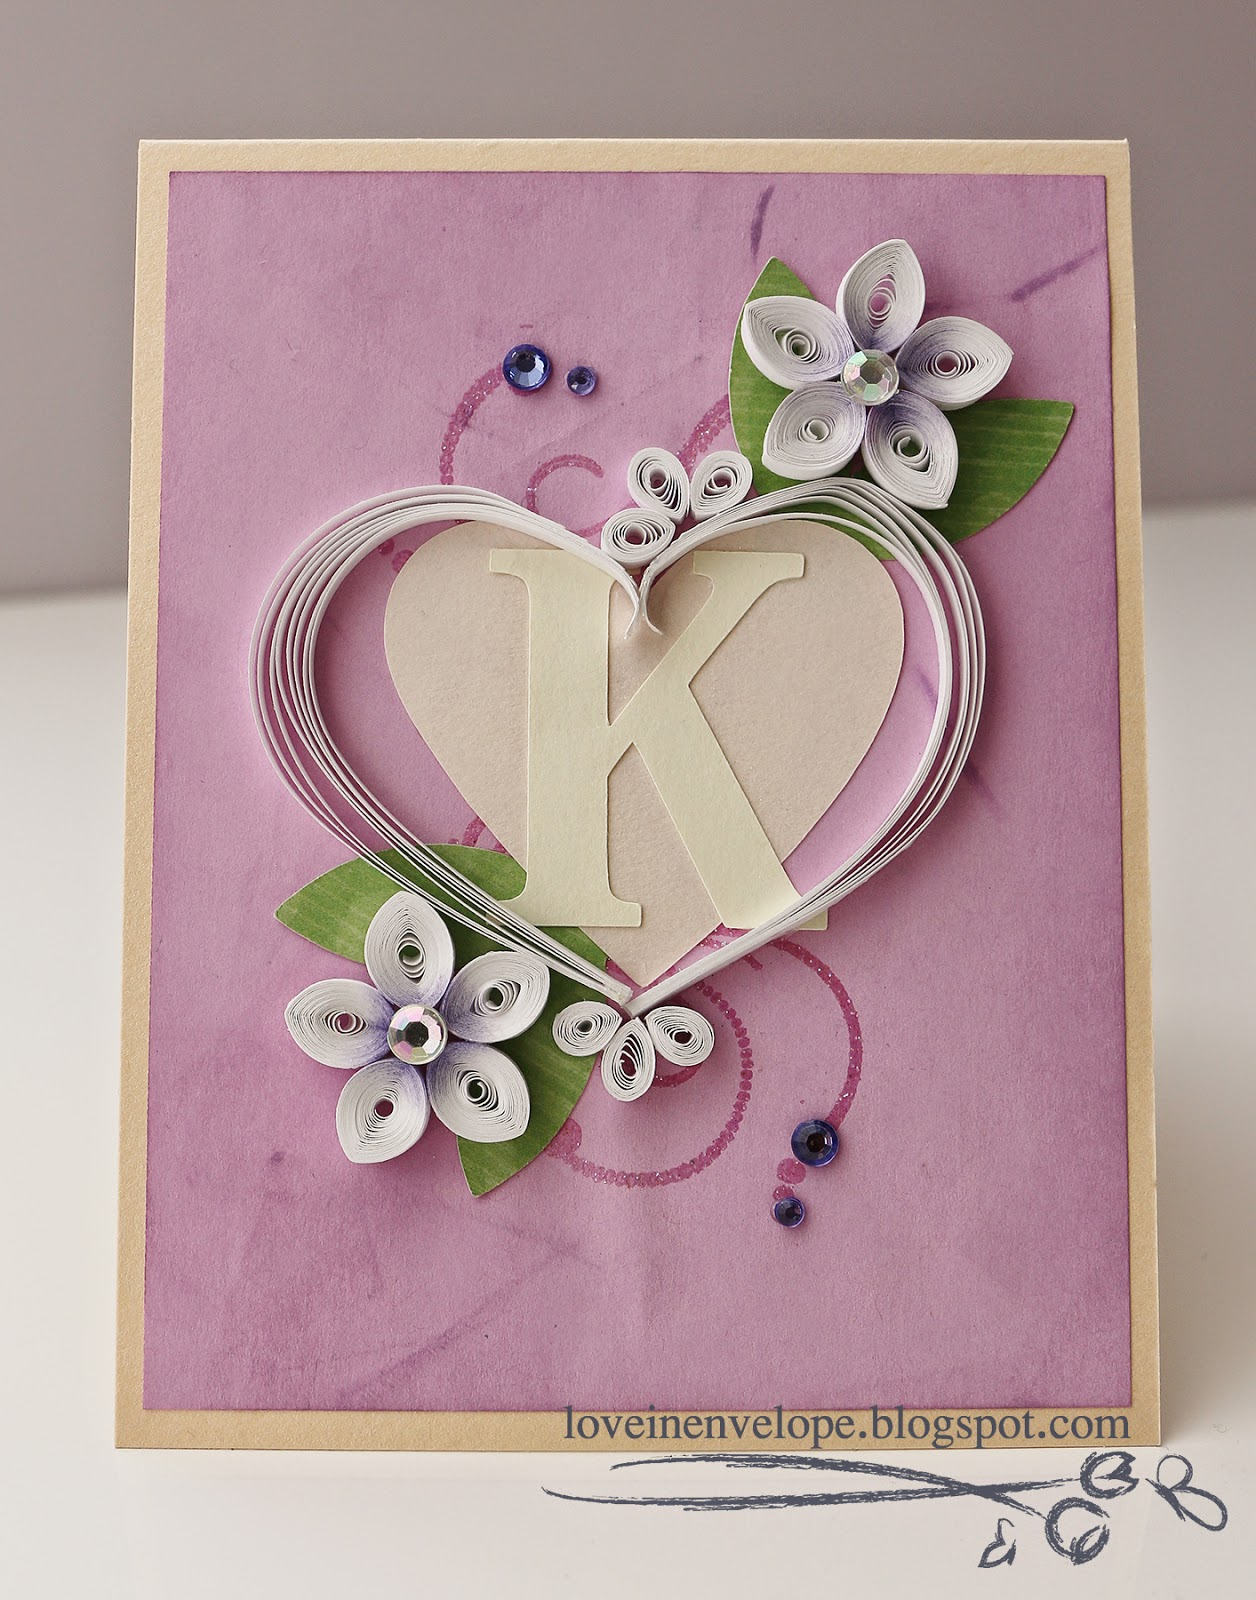 Love in envelope quilled white heart flowers initial k bridal this is a card that i made for soon to be bride karen for her bridal shower earlier this month ive known her since late hscollege days and i cant kristyandbryce Image collections